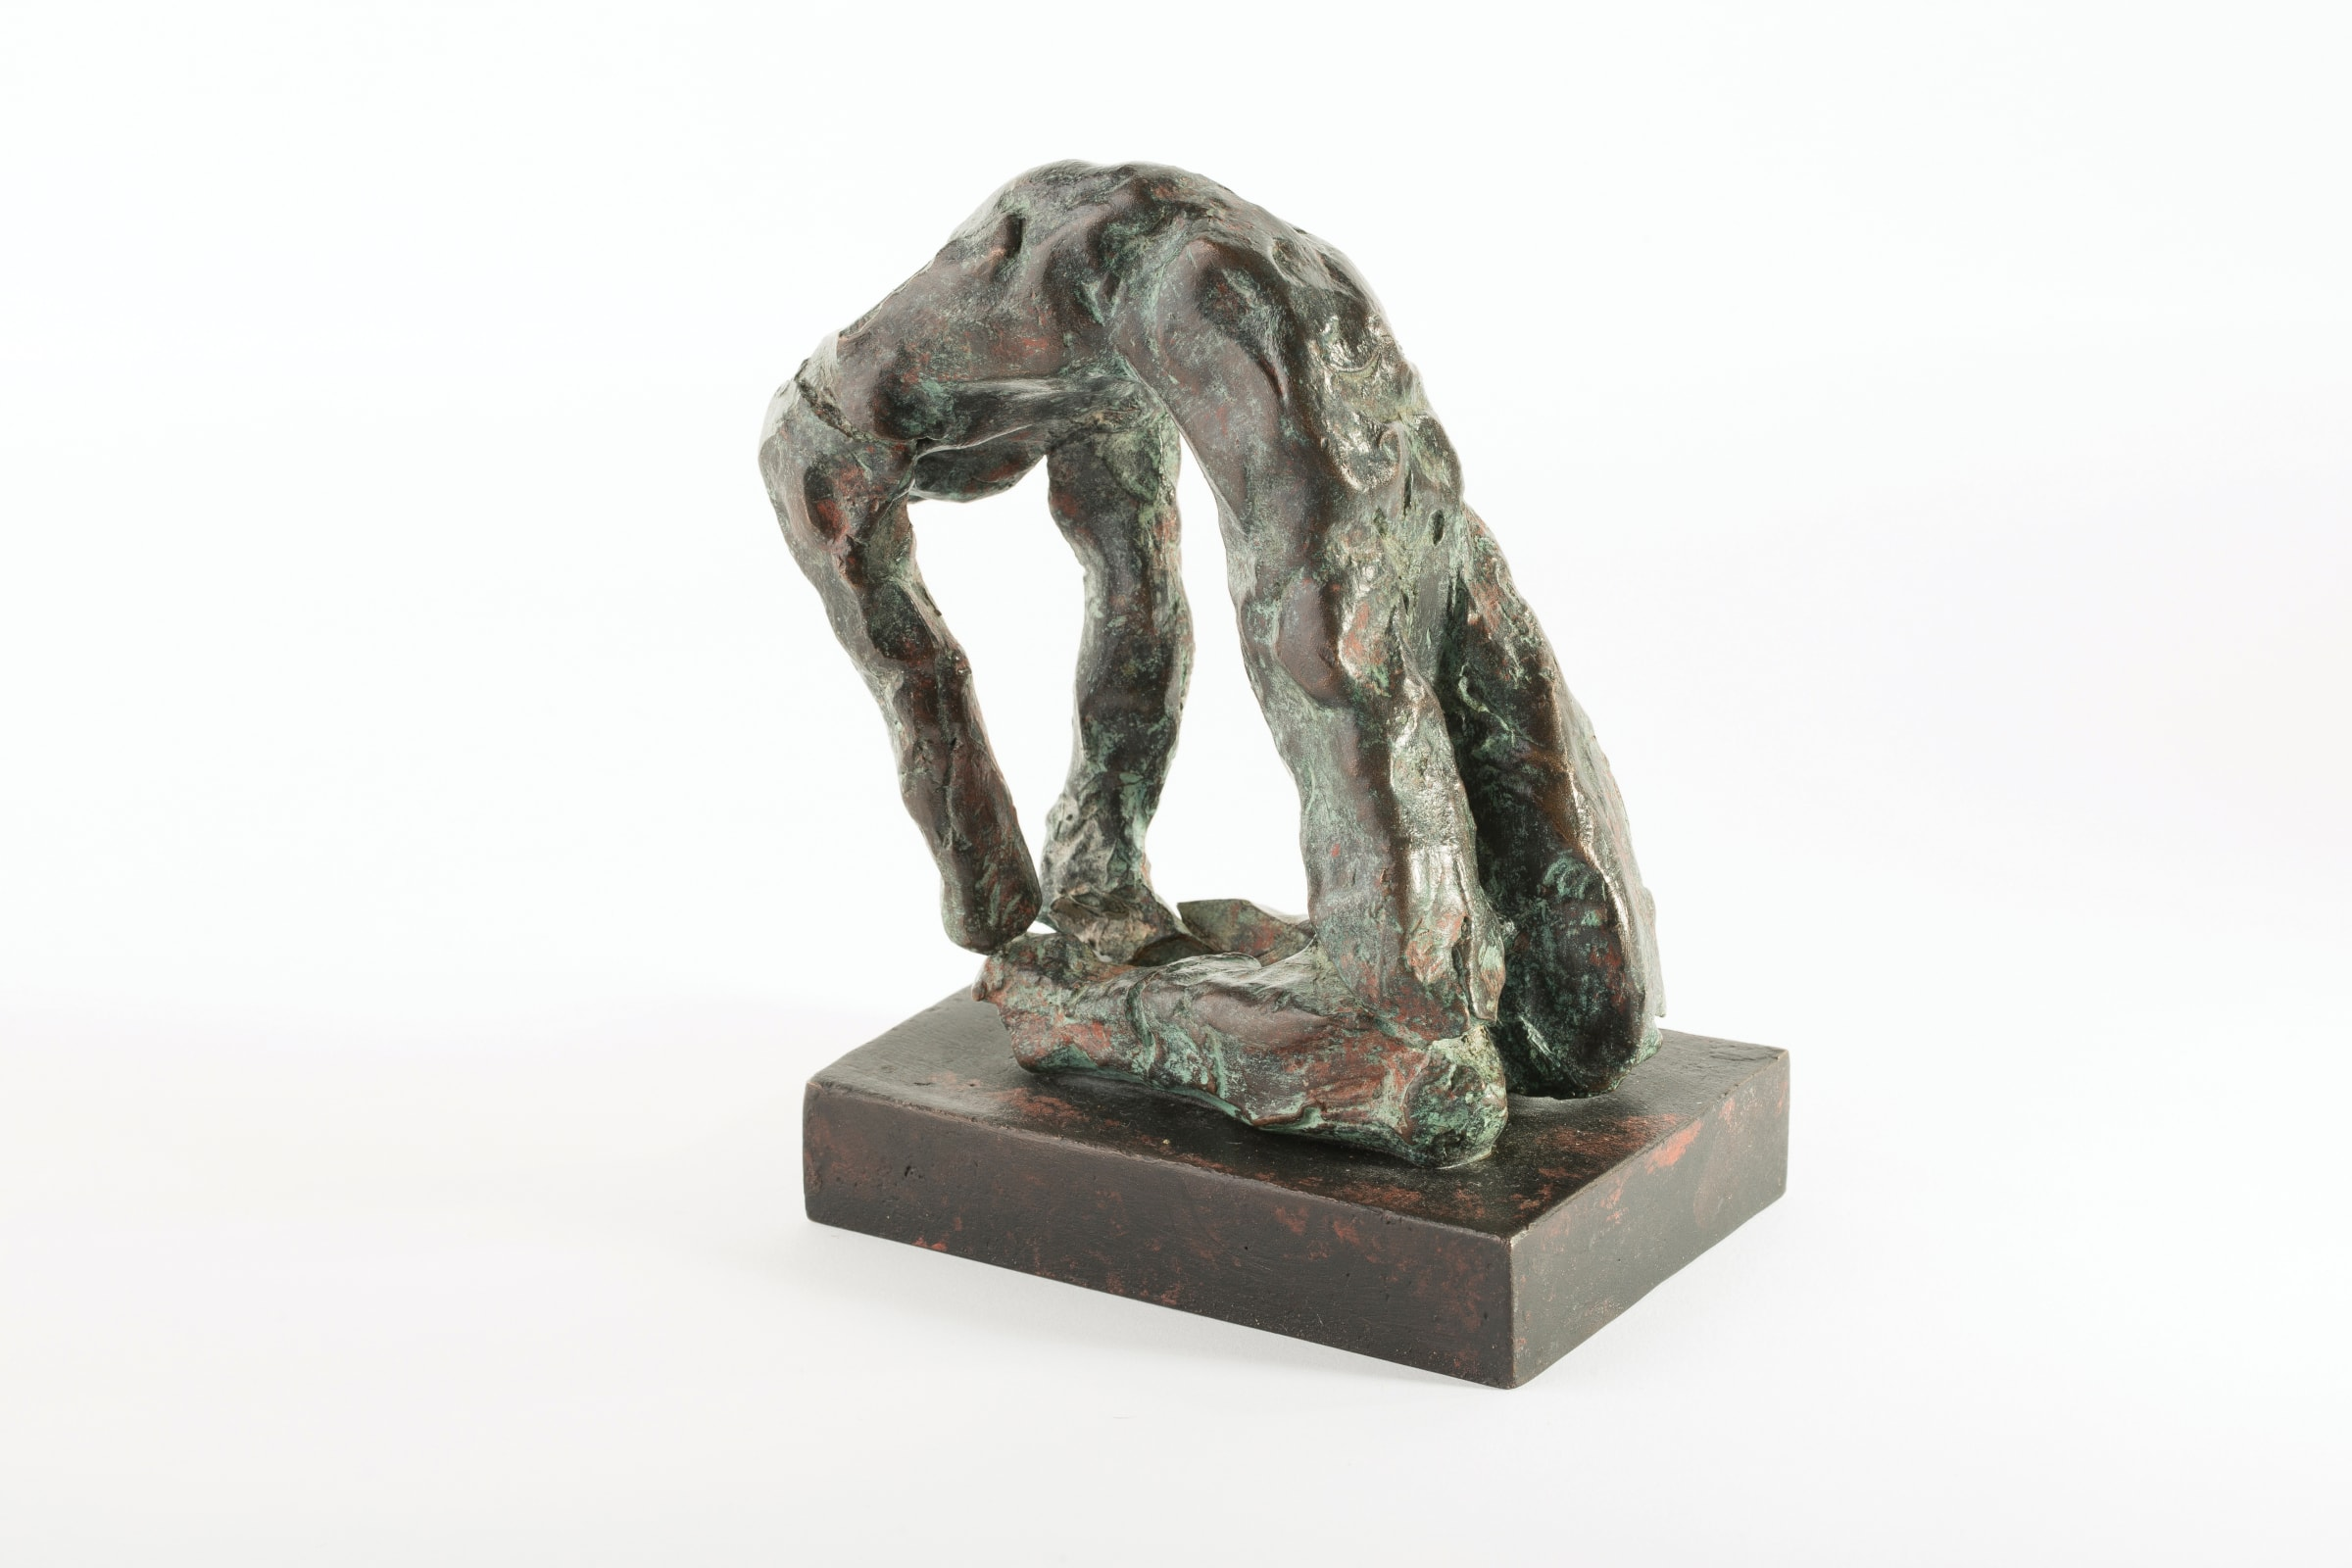 "<span class=""link fancybox-details-link""><a href=""/artists/78-ivor-abrahams/works/9818-ivor-abrahams-arching-figure-1982-6/"">View Detail Page</a></span><div class=""artist""><span class=""artist""><strong>IVOR ABRAHAMS</strong></span></div>